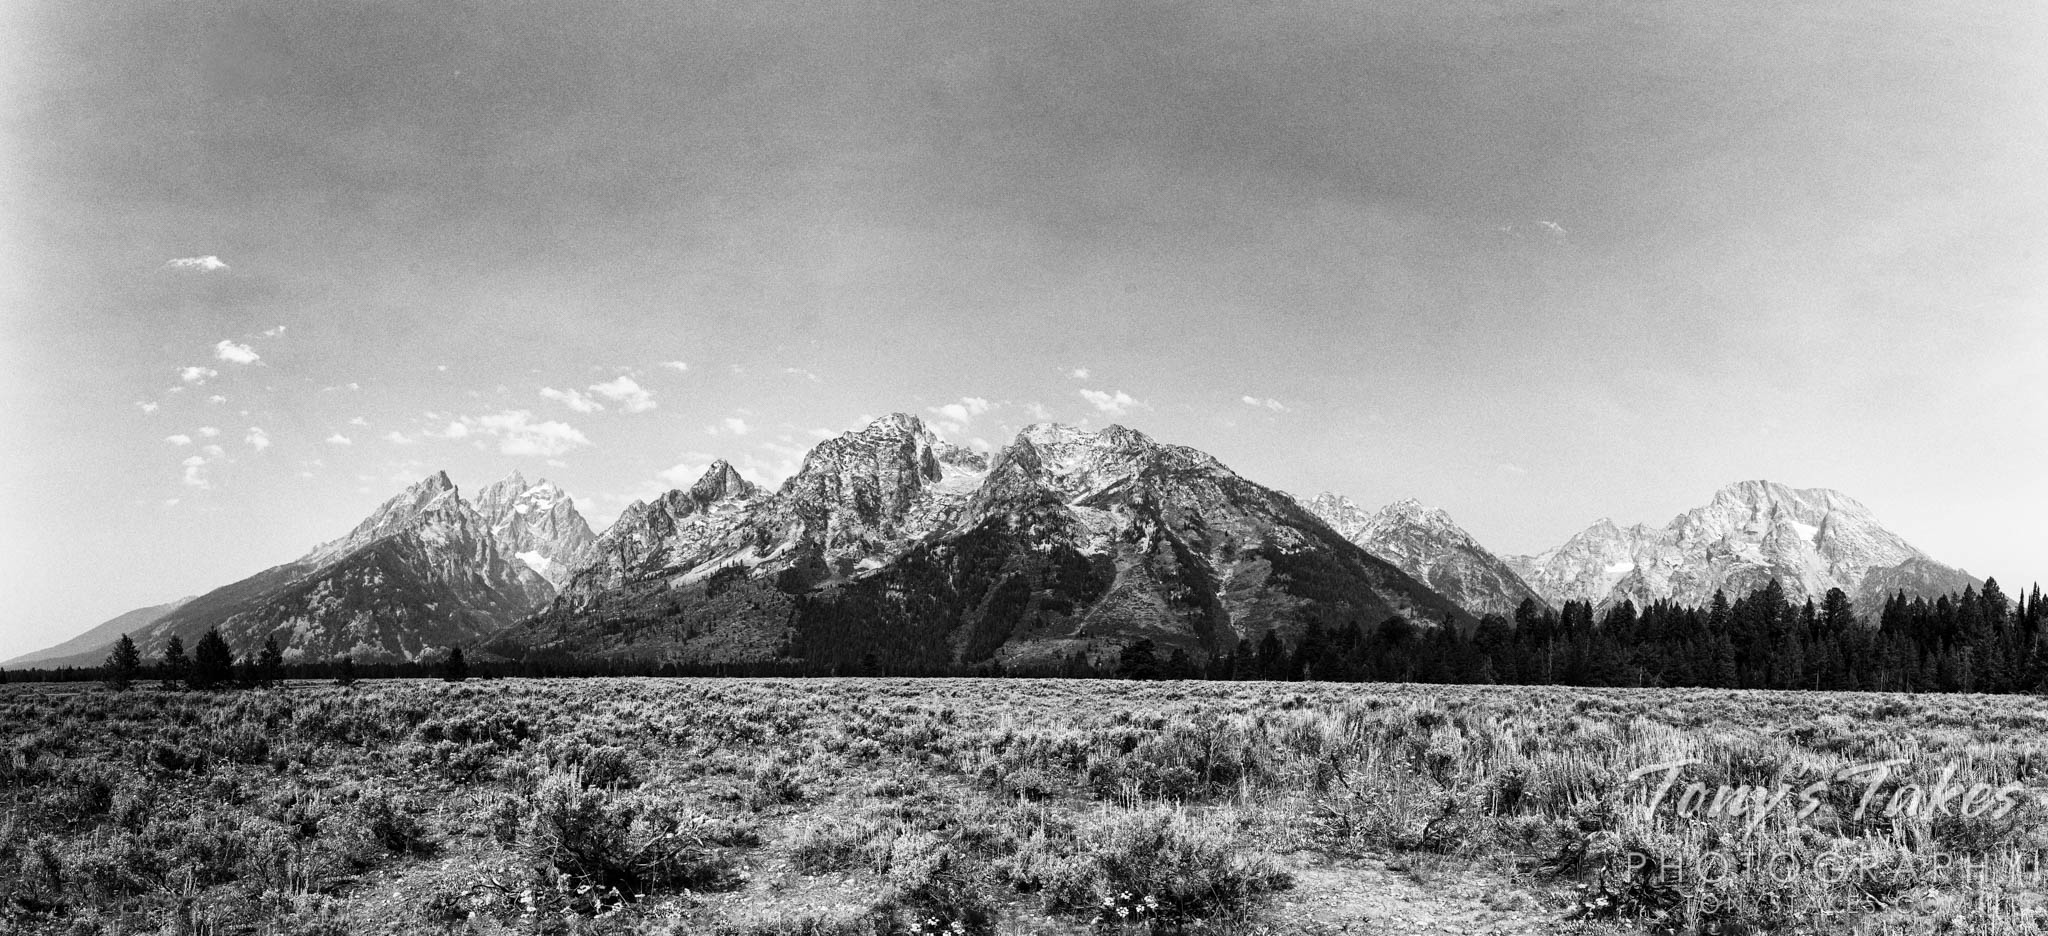 The Tetons in black and white